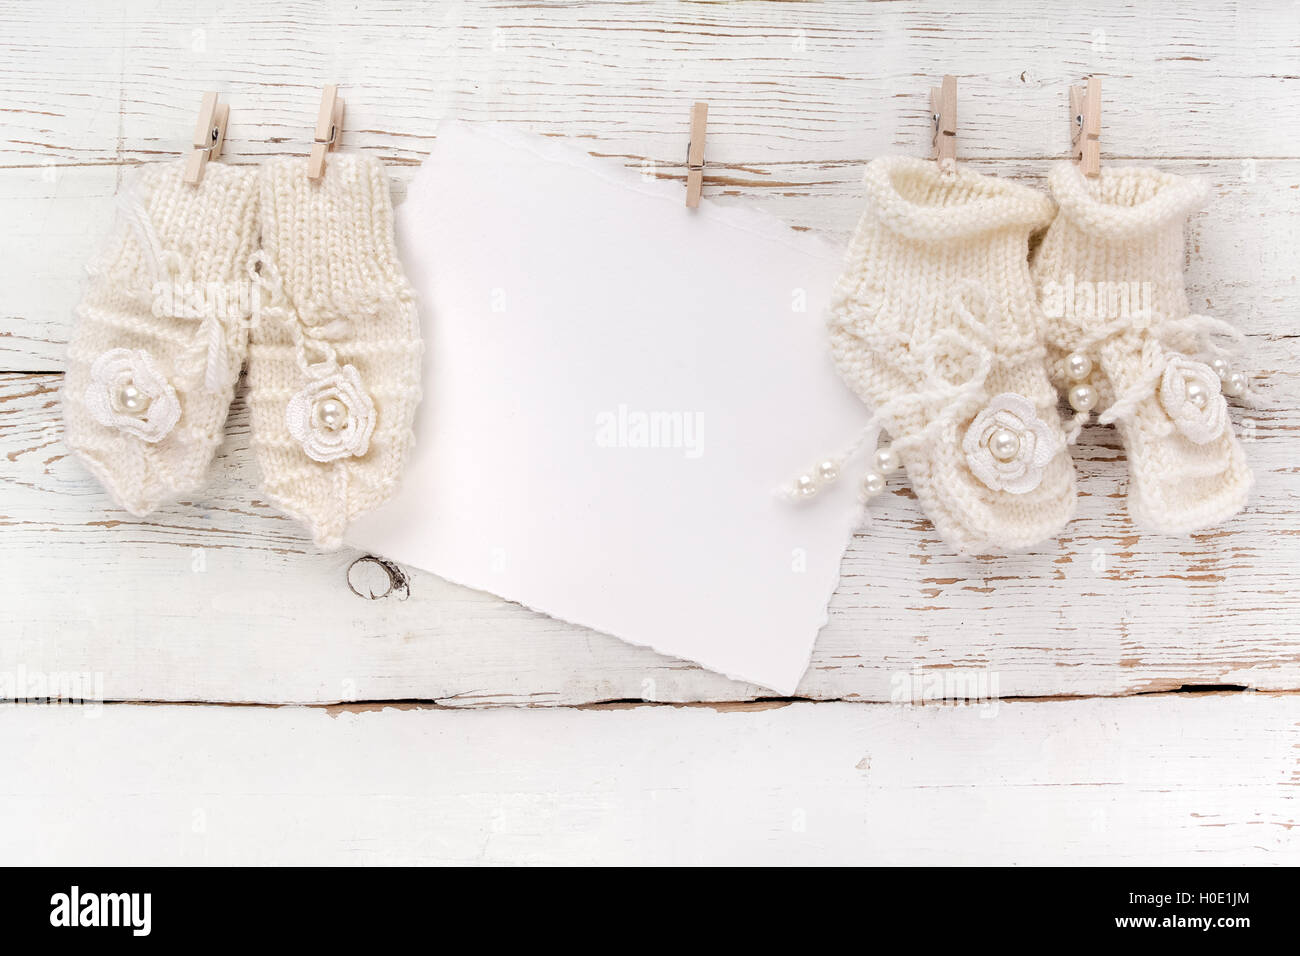 New born or baptism greeting card blank with baby girl shoes and new born or baptism greeting card blank with baby girl shoes and gloves on white wooden background m4hsunfo